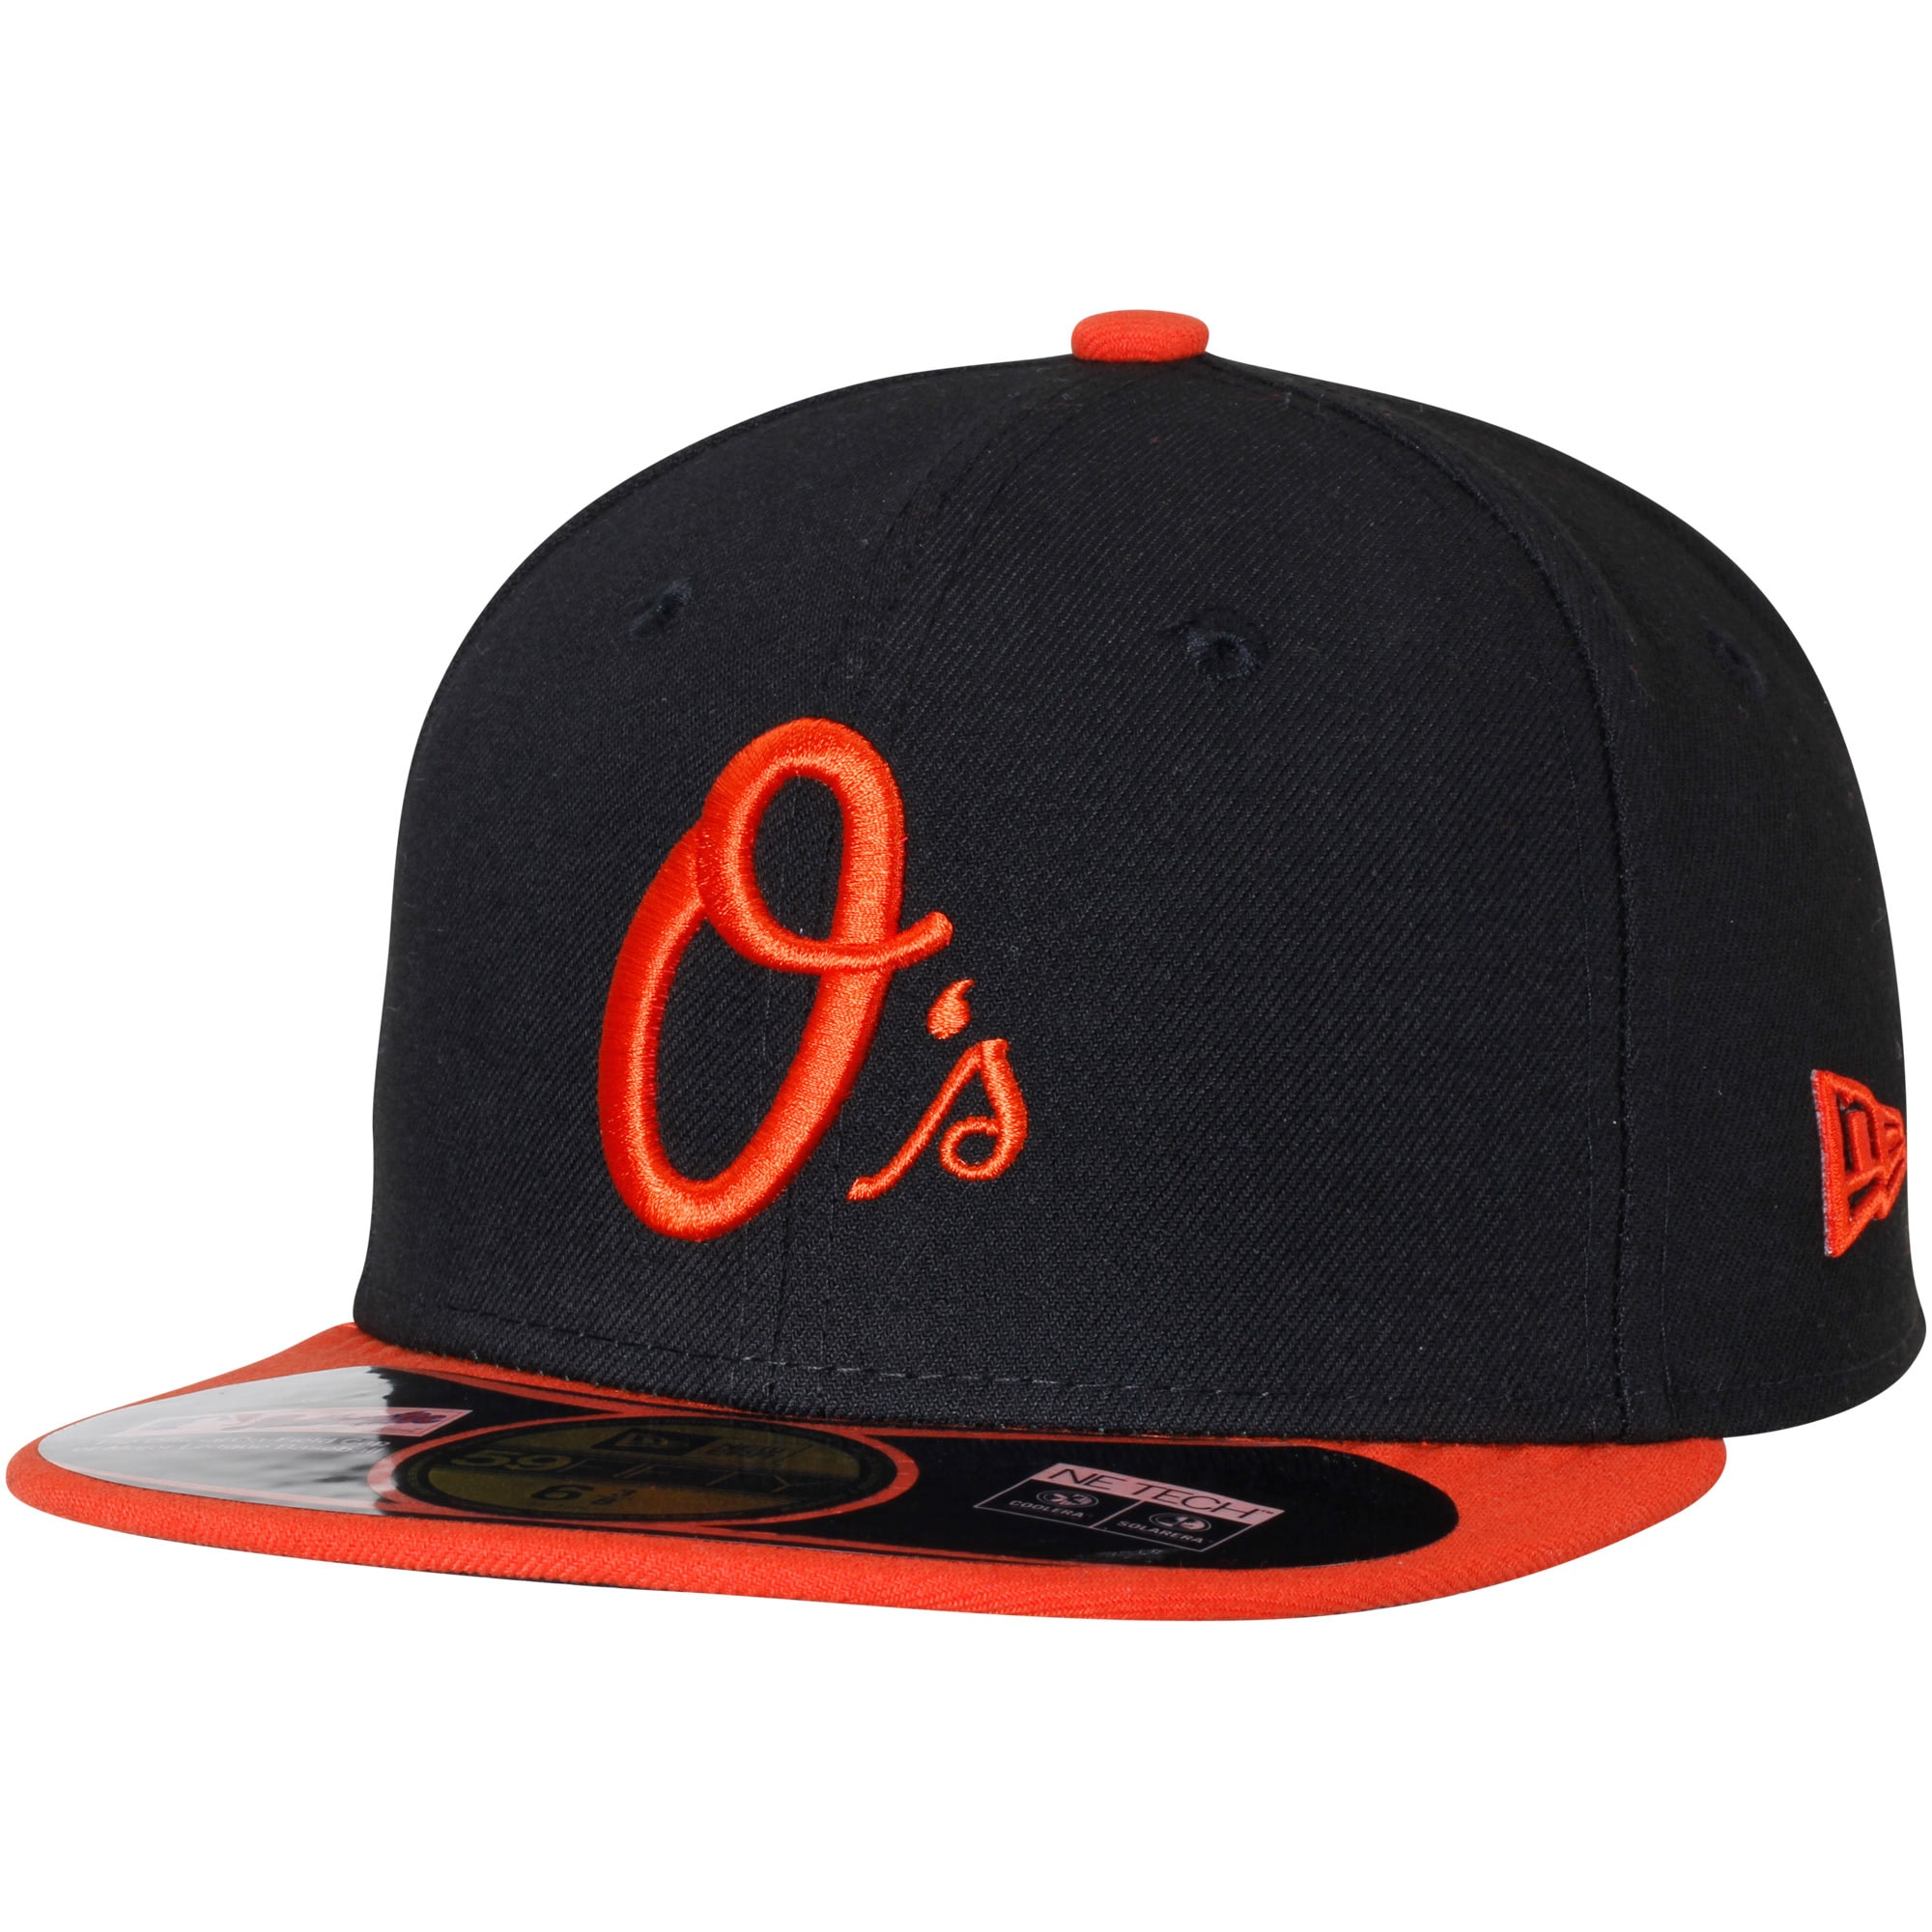 Baltimore Orioles New Era Youth Authentic Collection On-Field Alternate 59FIFTY Fitted Hat - Black/Orange